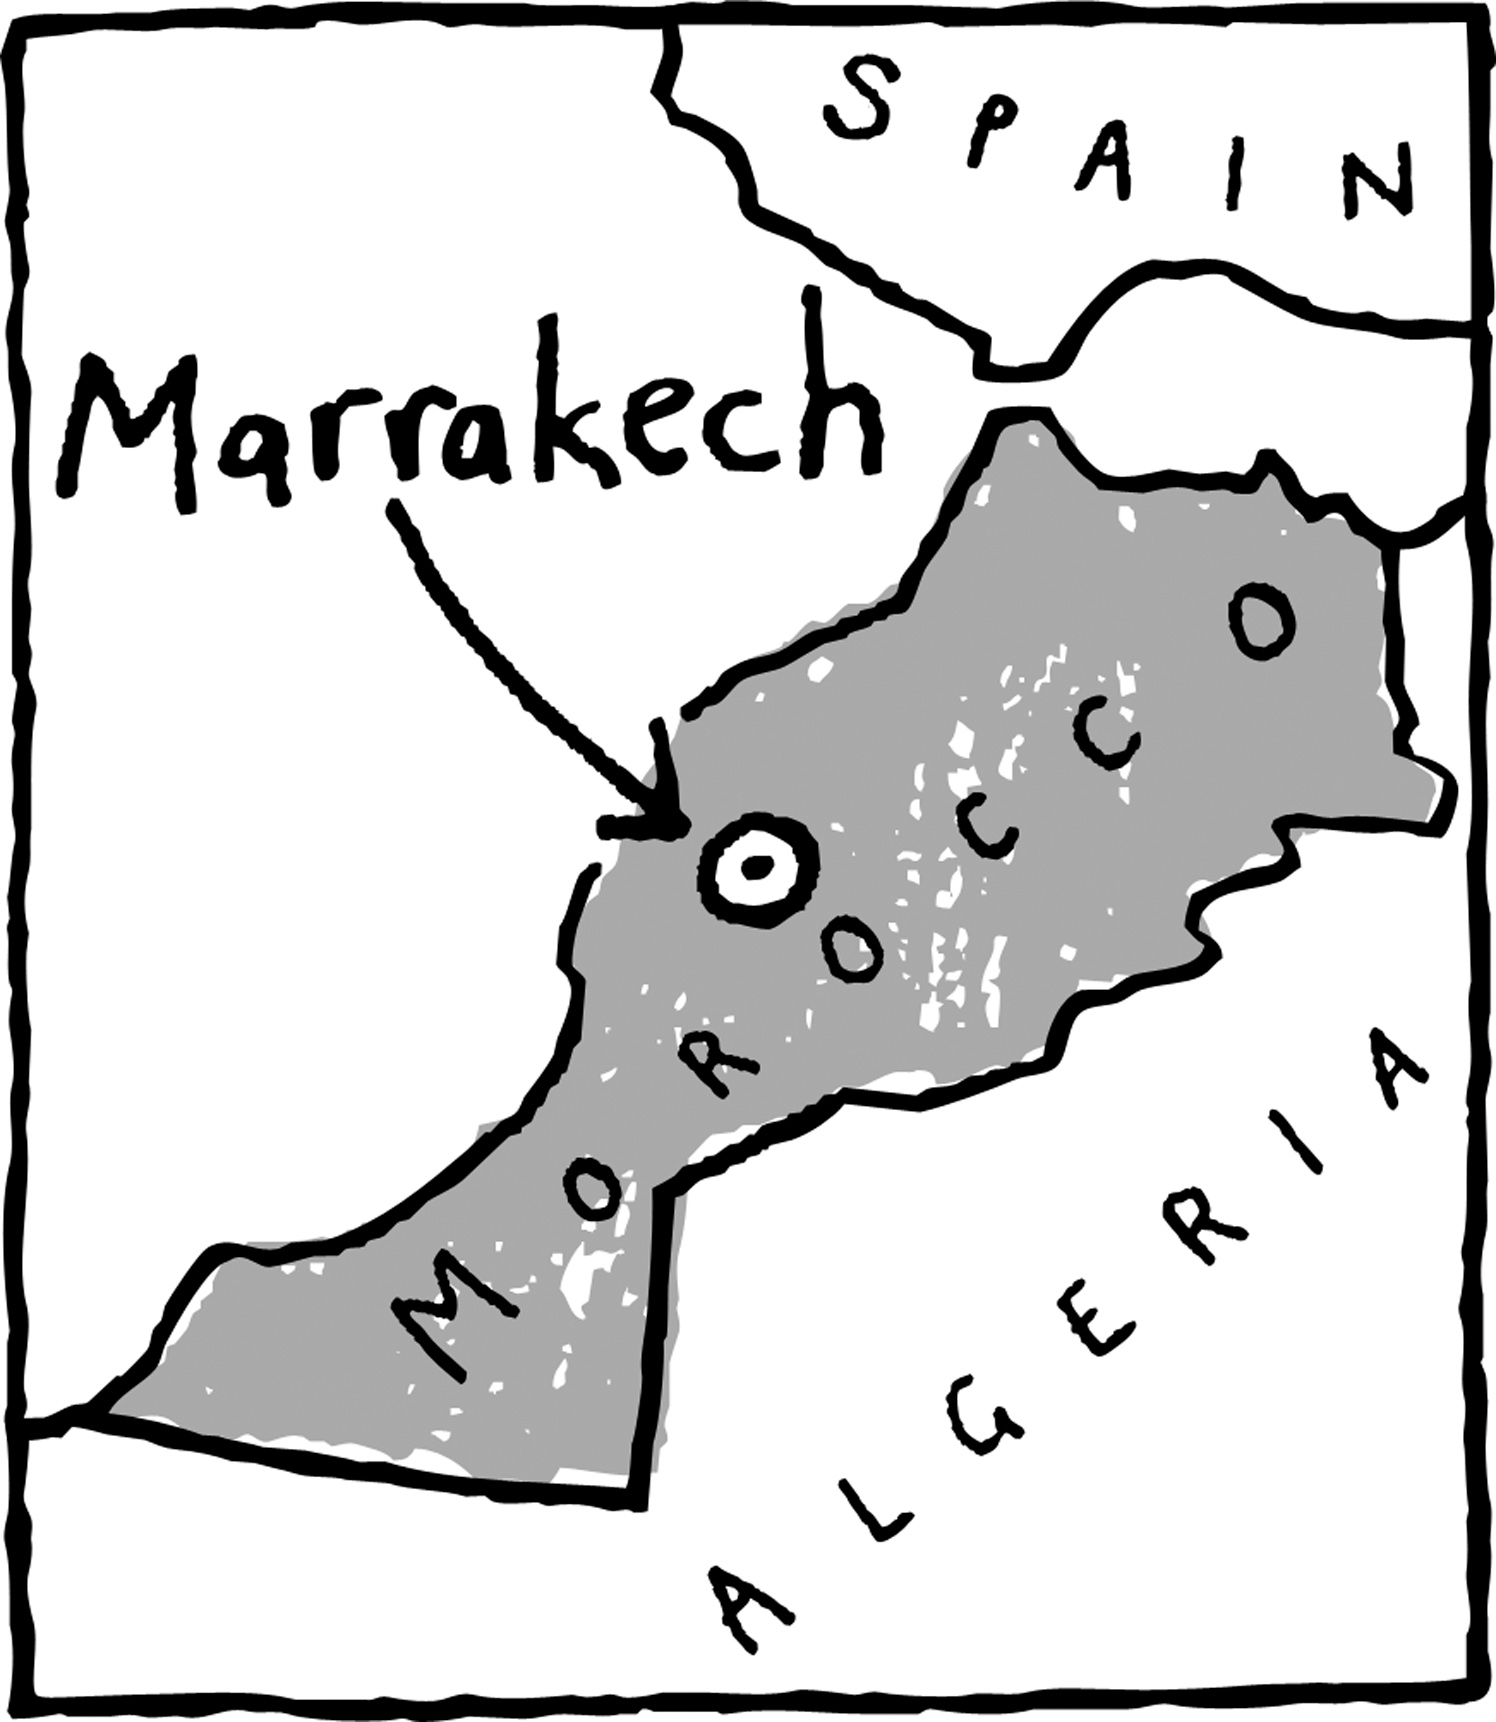 Marrakech Morocco Map Location - Dominic Trevett - Debut Art on map of africa, map of the us, map of greece, map of senegal, map of the mediterranean, map of tangier, map of atlantic ocean, map of gibraltar, map of fez, map of world, map of romania, map of marrakech, map of nicaragua, map of austria, map of mali, map of algeria, map of honduras, map of saint martin, map of western sahara, map of mongolia,